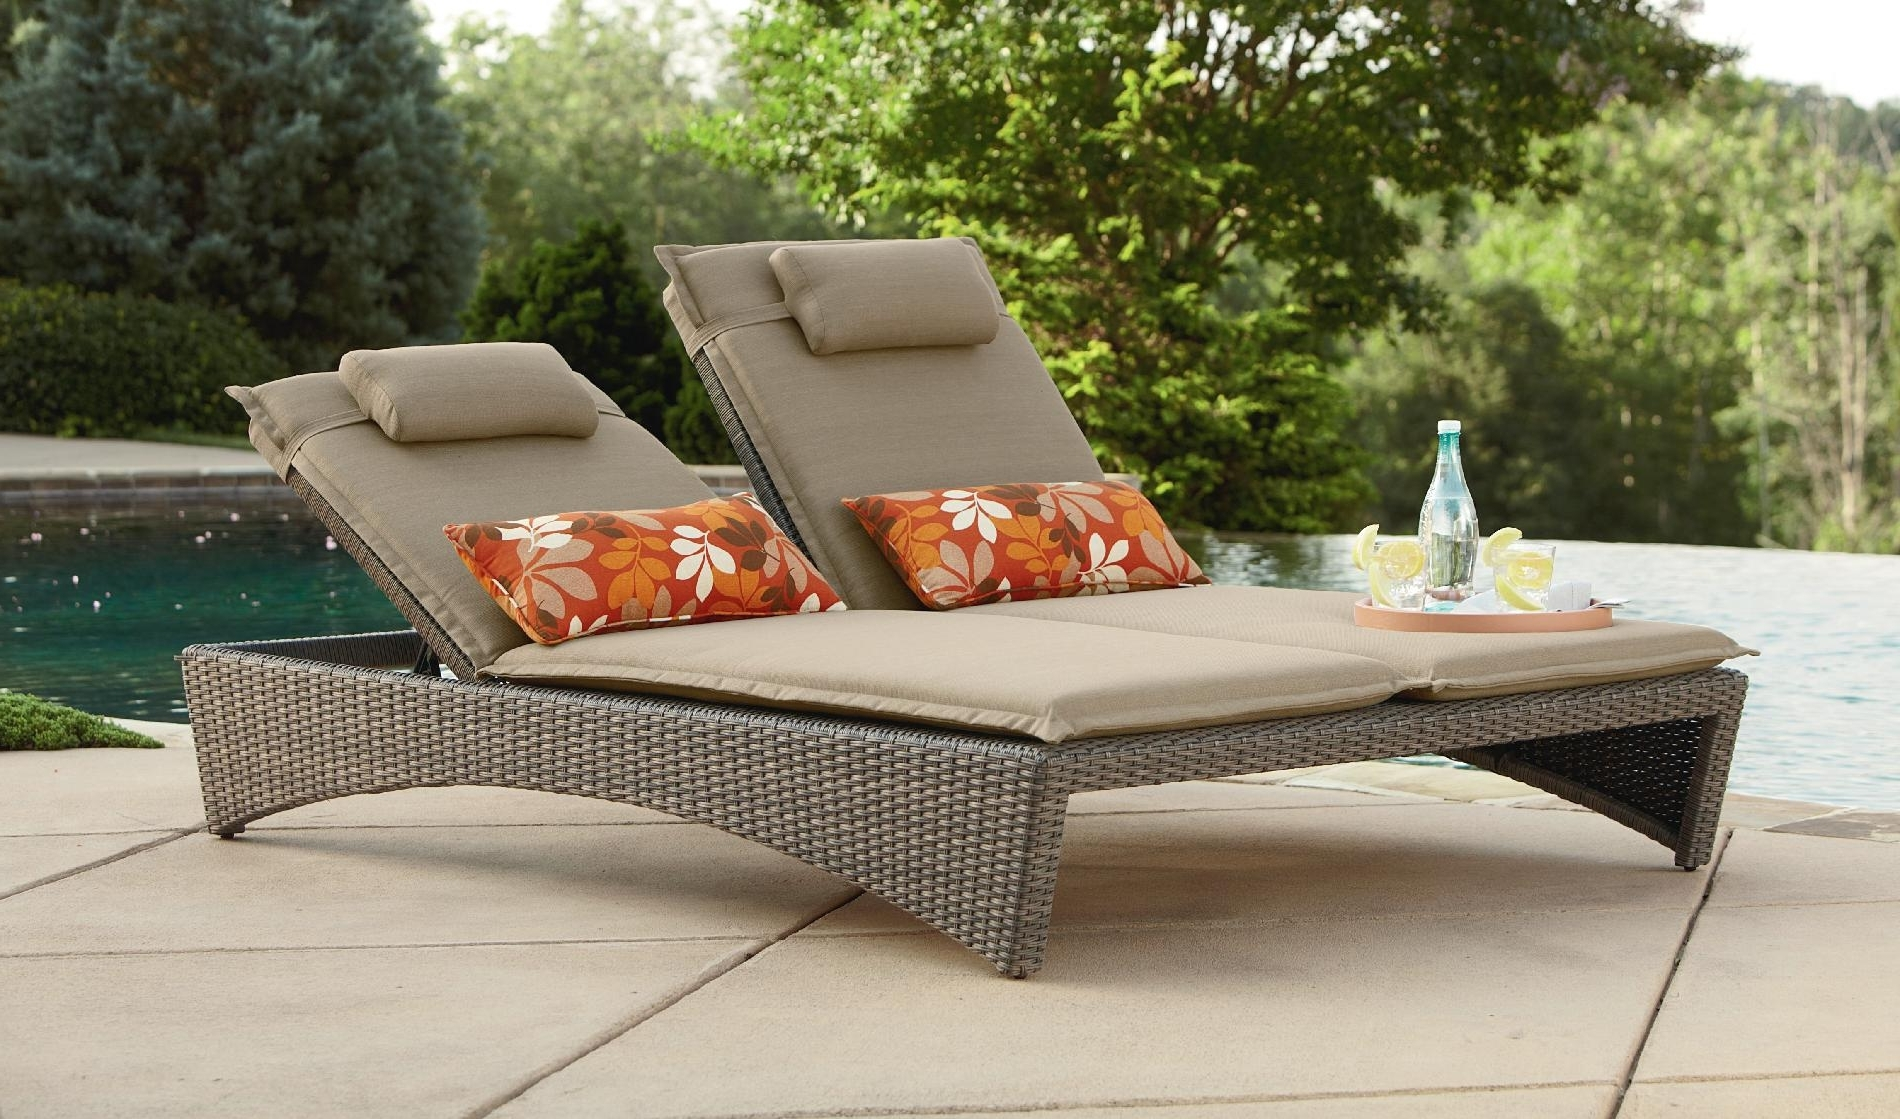 Patio Chaise Lounge Clearance With Preferred Best Pool Chaise Lounge Chairs — Bed And Shower : Decorating Pool (View 13 of 15)